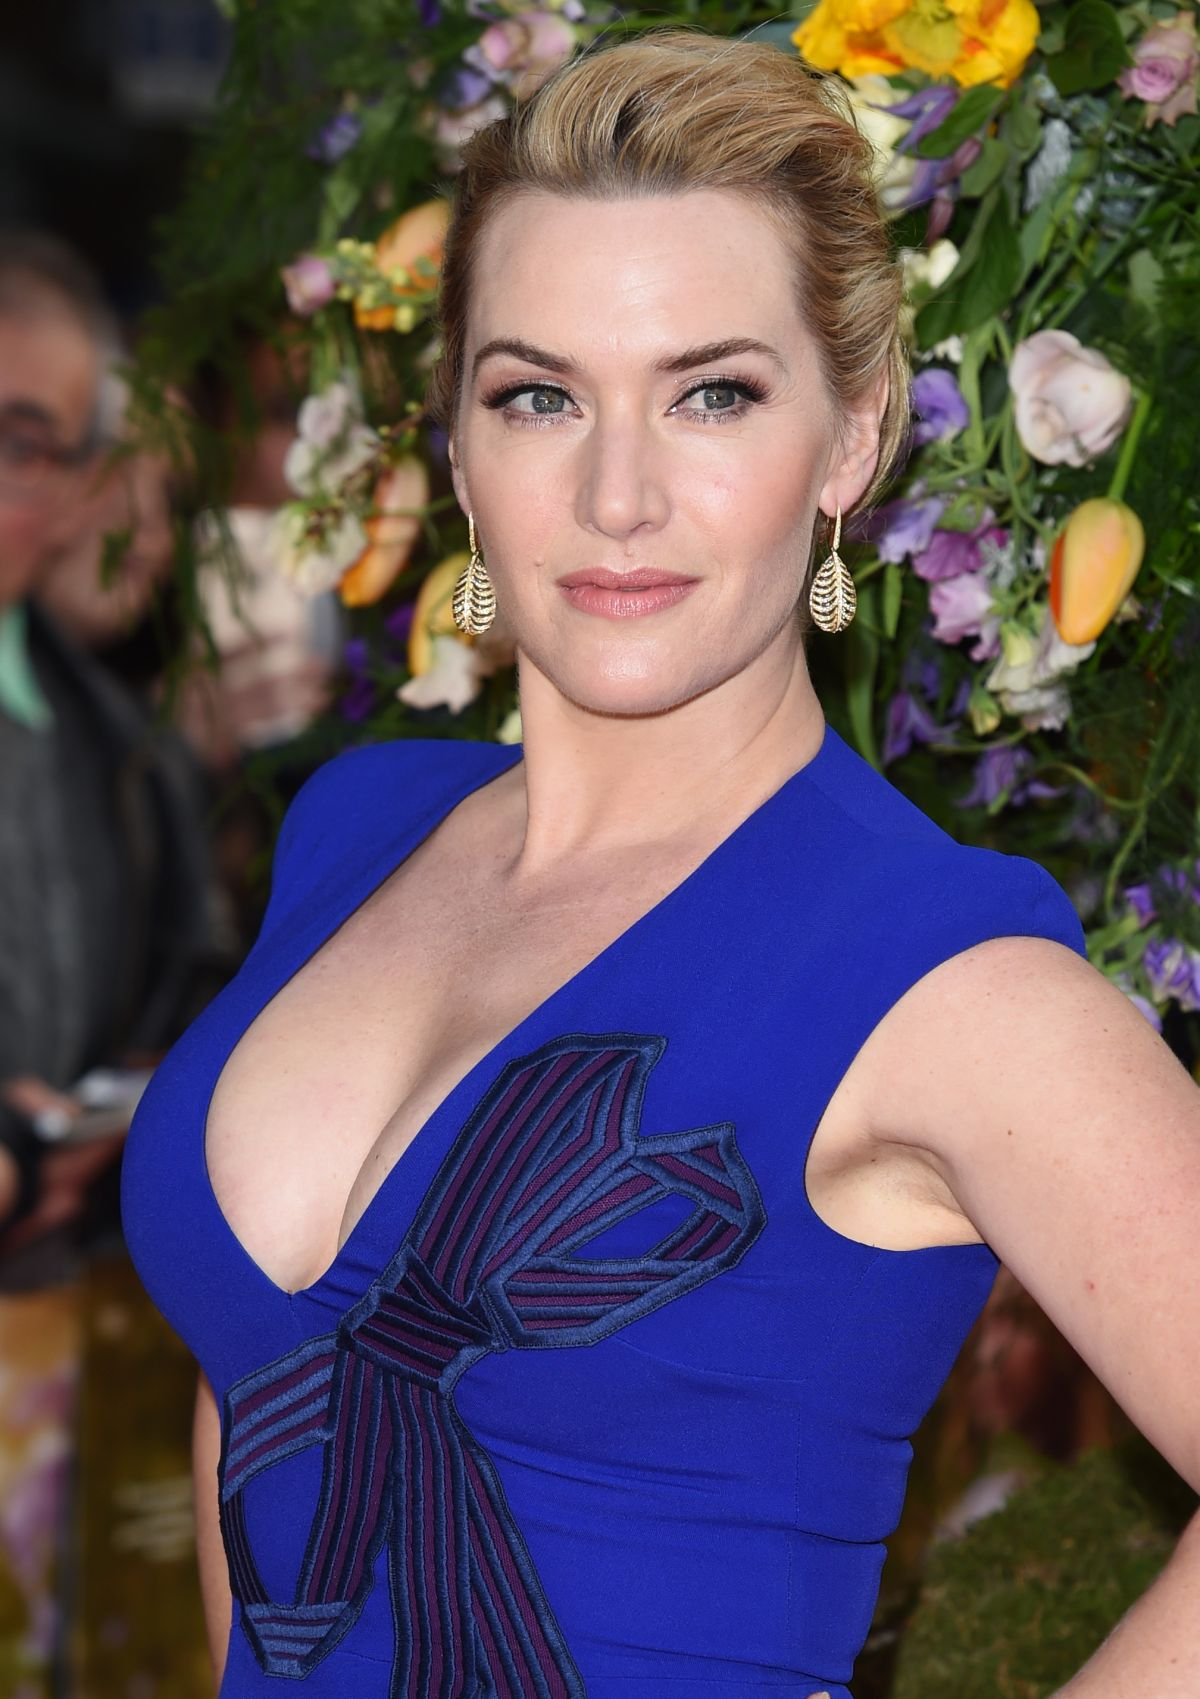 KATE WINSLET at A Little Chaos Premiere in London - HawtCelebs ...